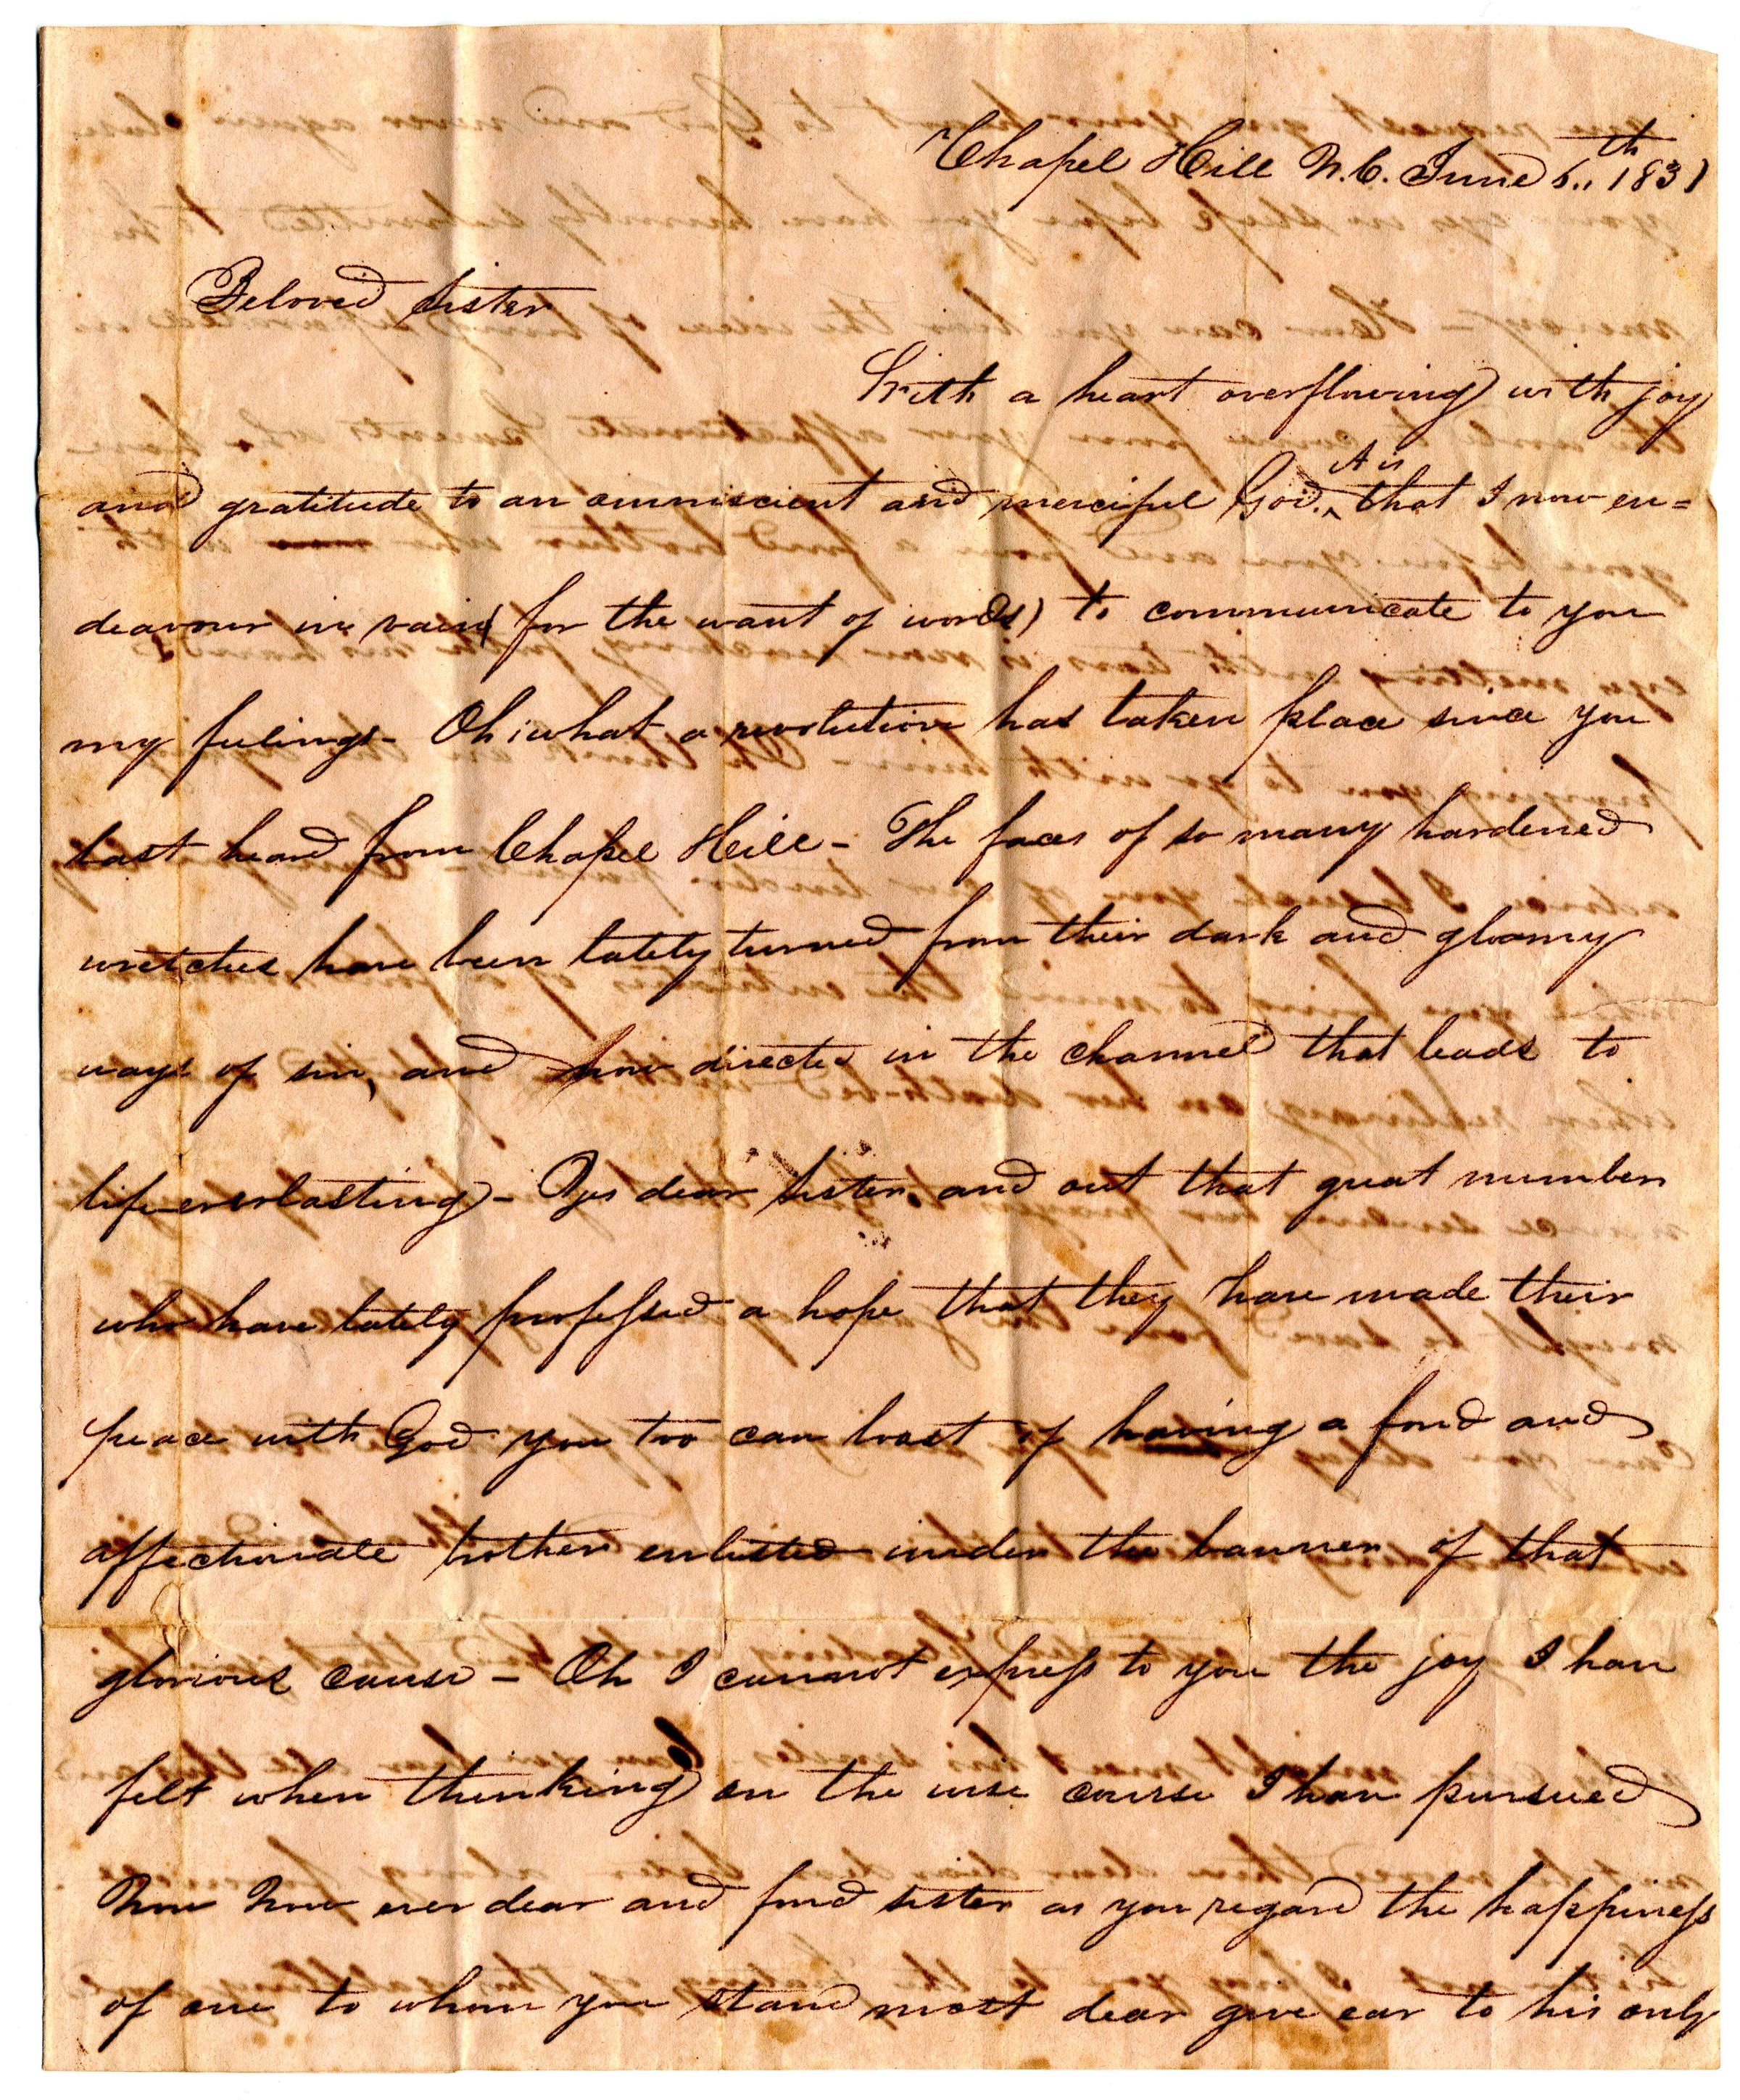 Thomas Harriss' letter